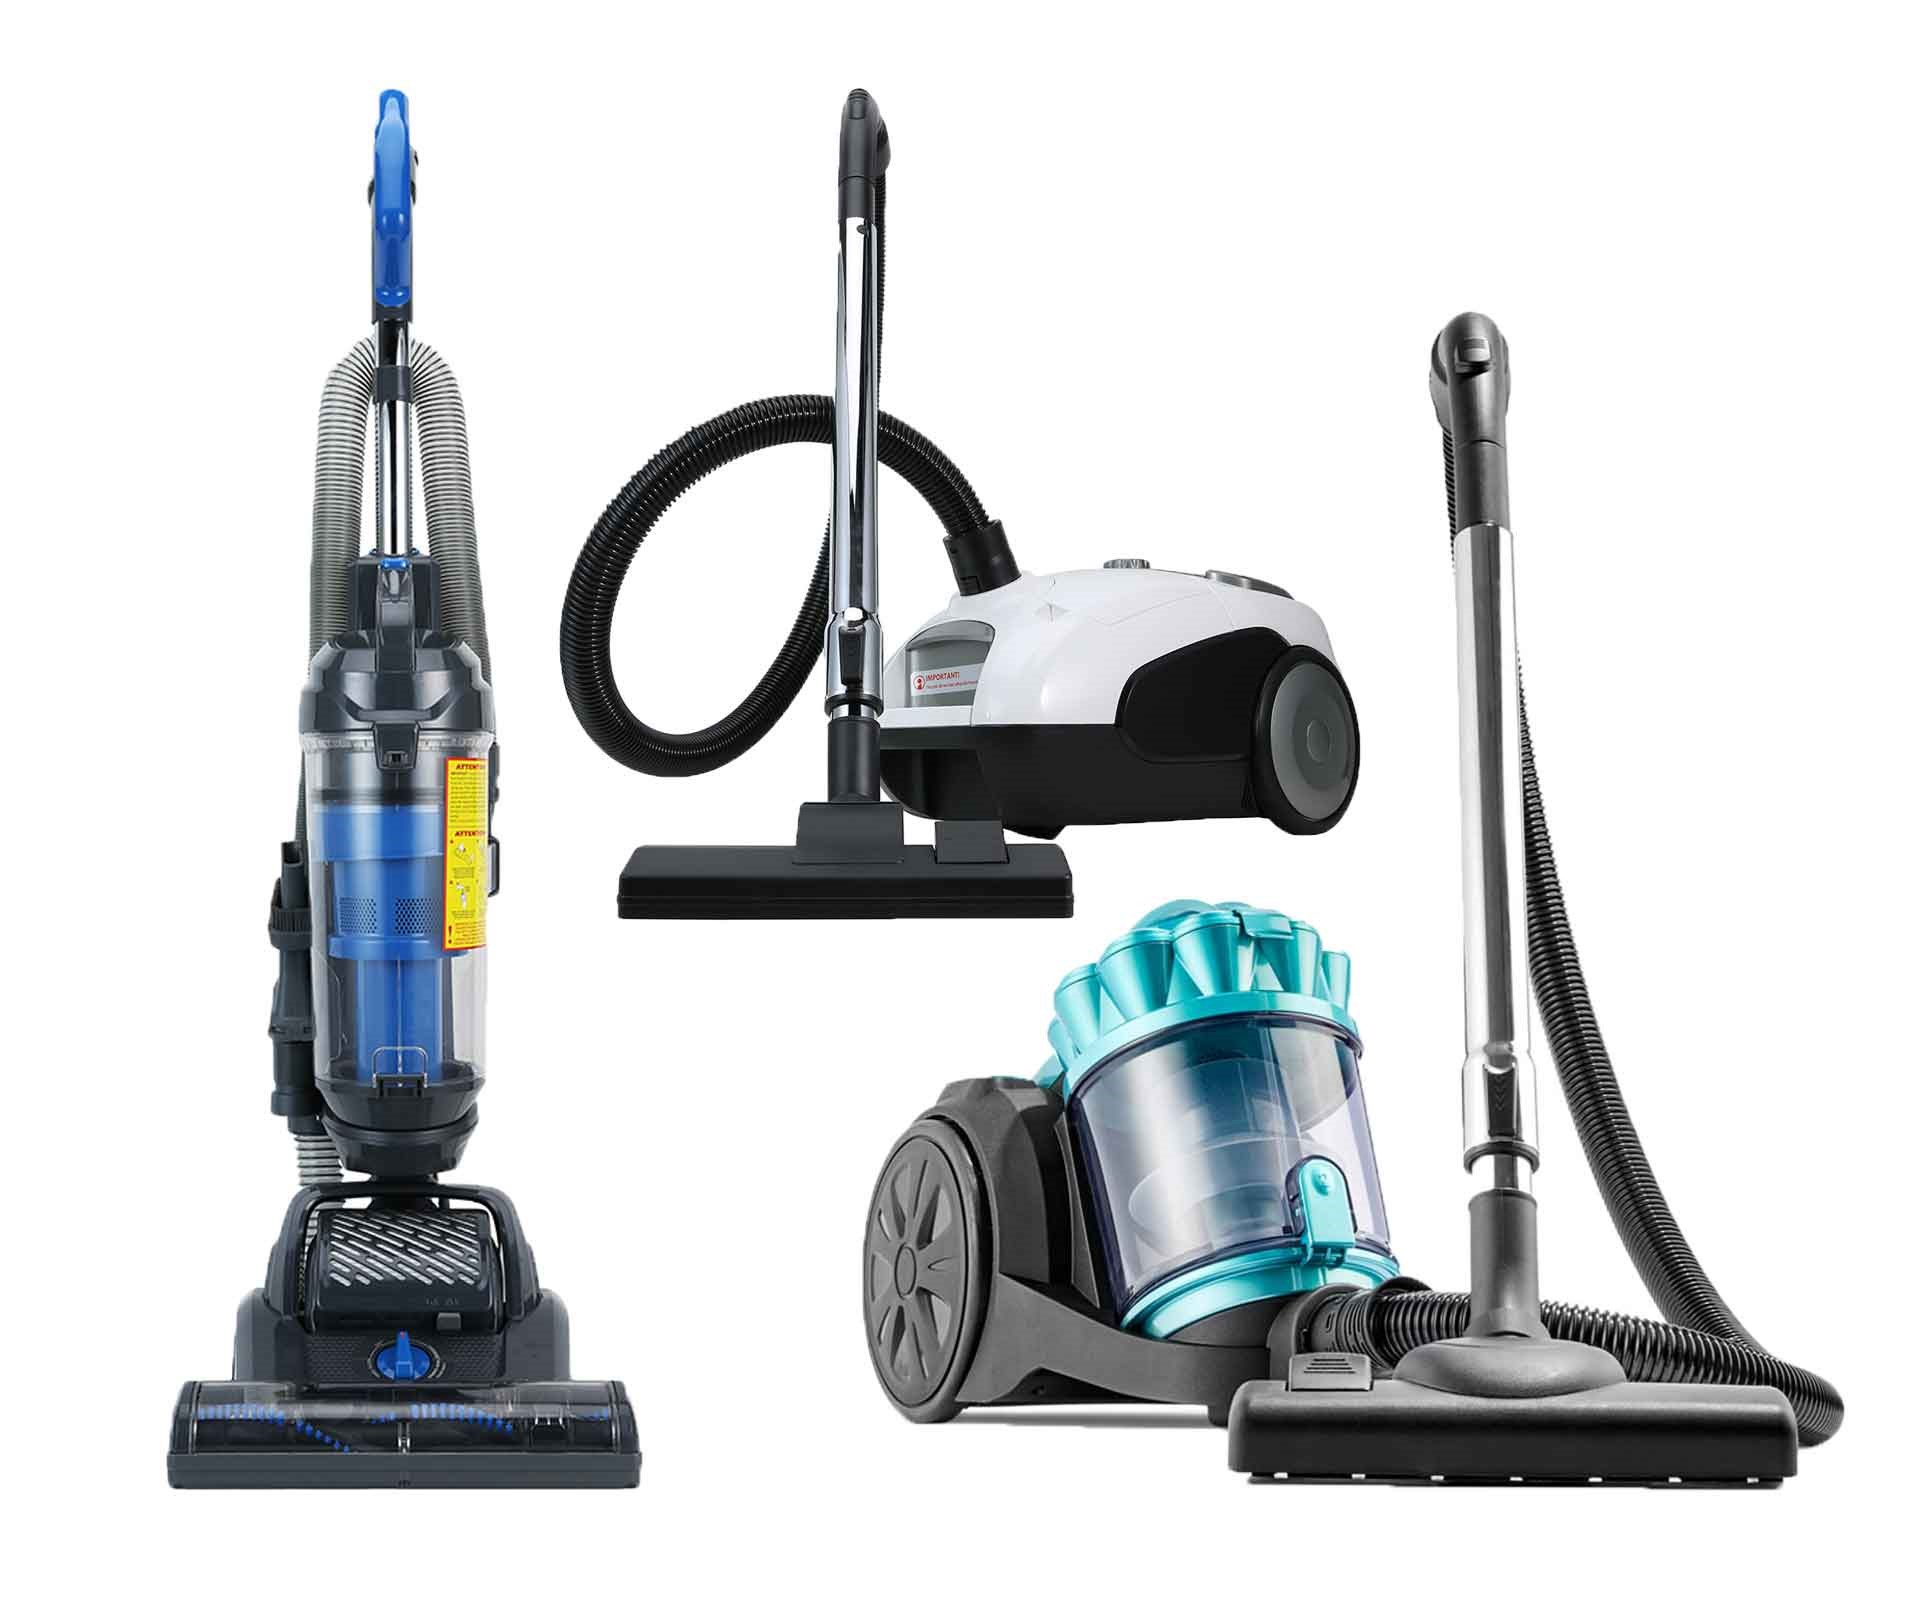 the best kmart vacuum cleaner according to independent reviews